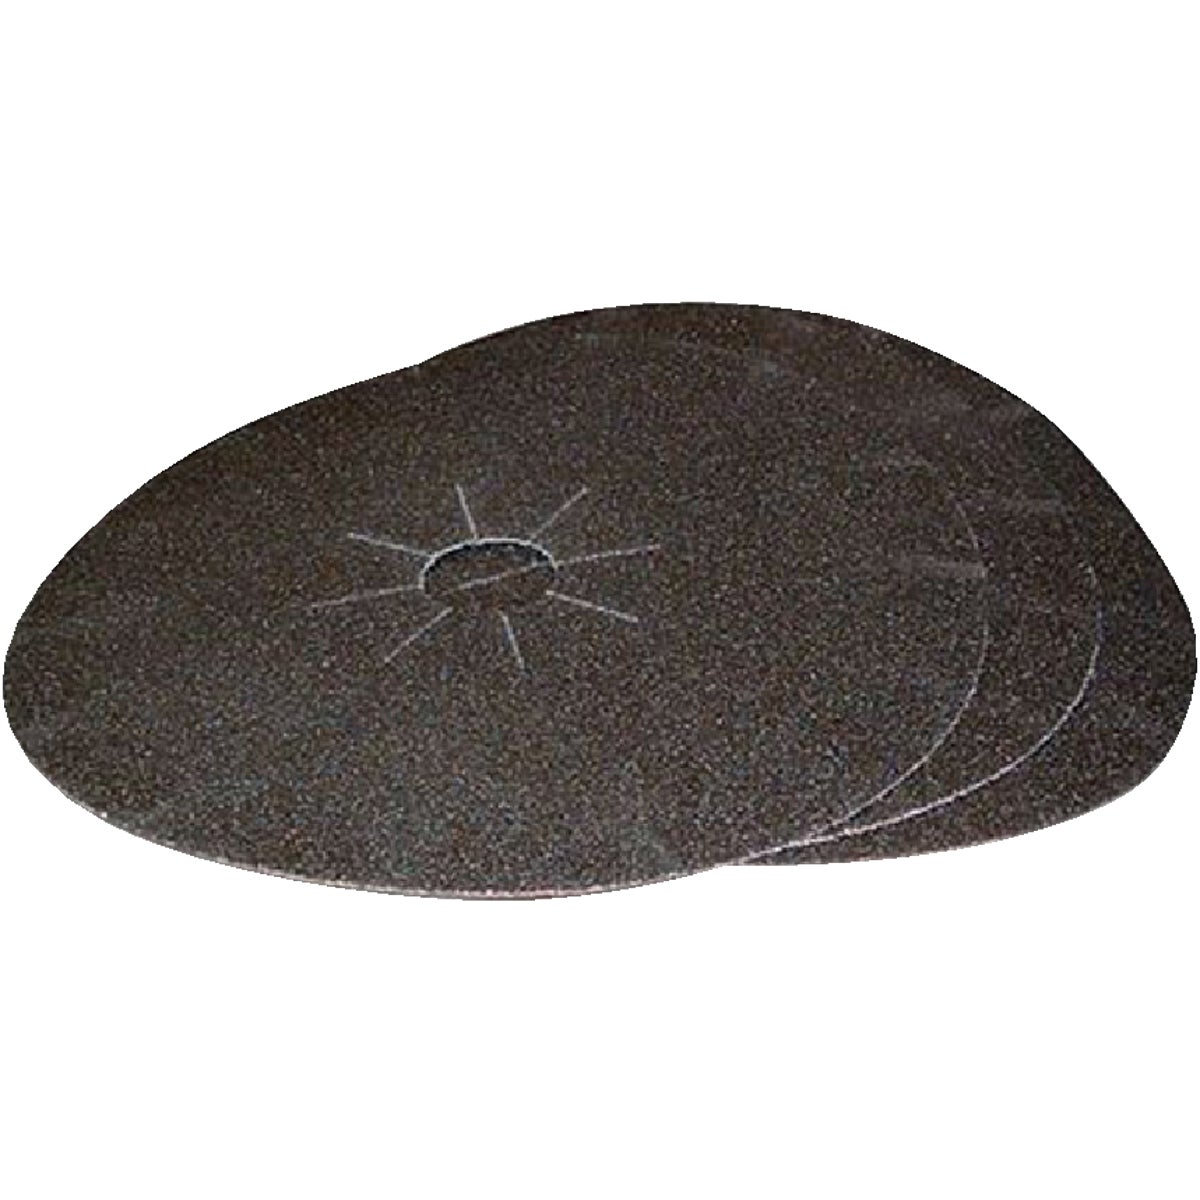 "16"" 80G FLR SANDING DISC - 007-816280 by Virginia Abrasives"